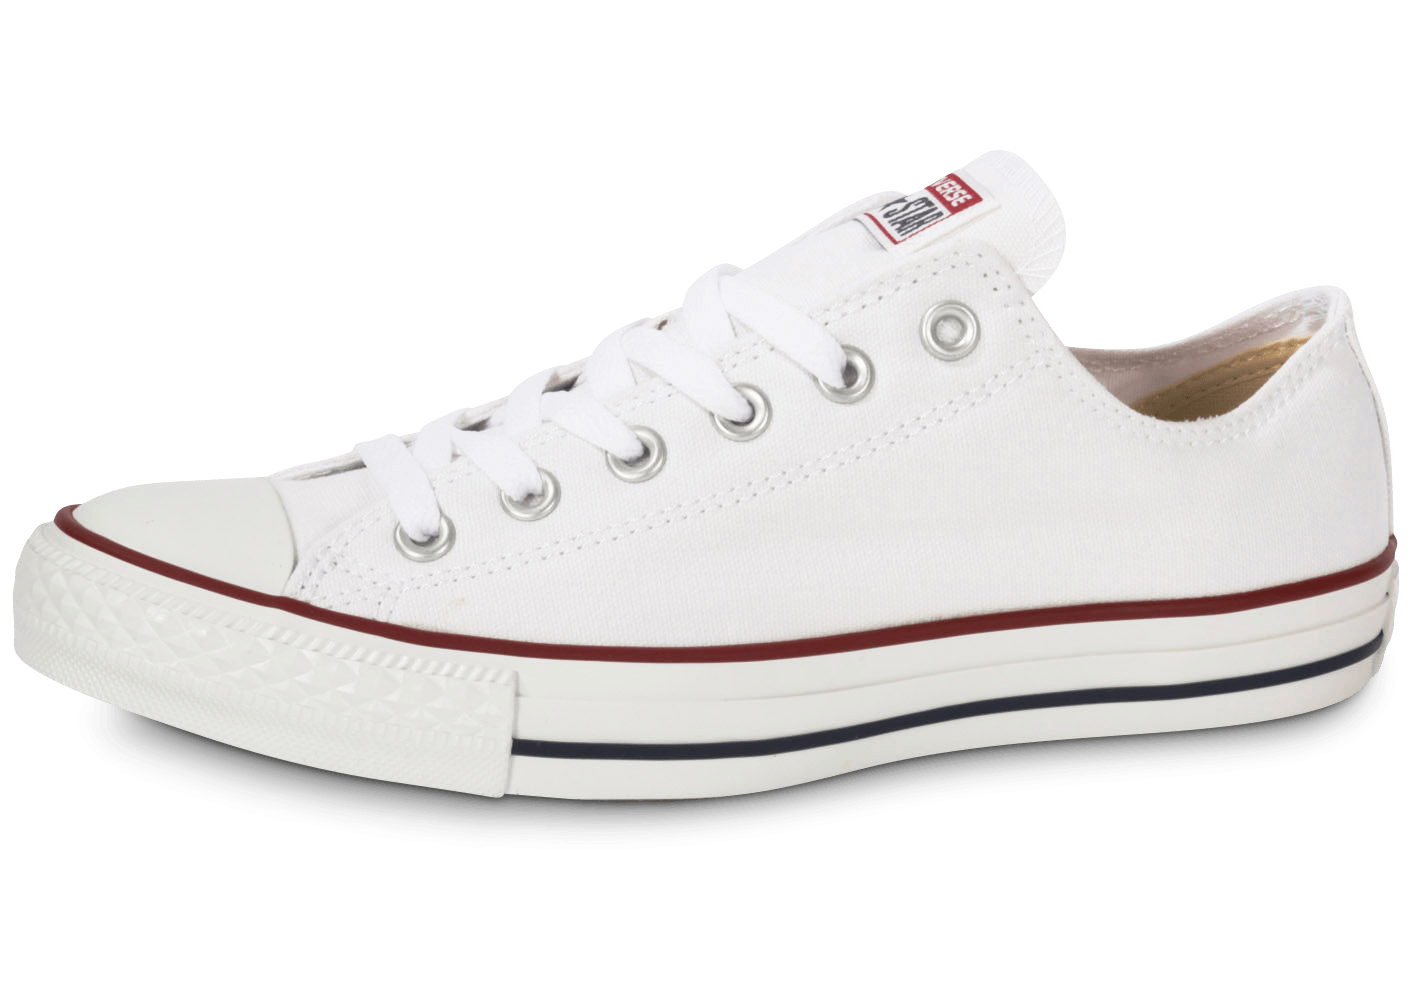 0f7126317a90e Converse Chuck Taylor All Star low blanche - Chaussures Baskets femme -  Chausport